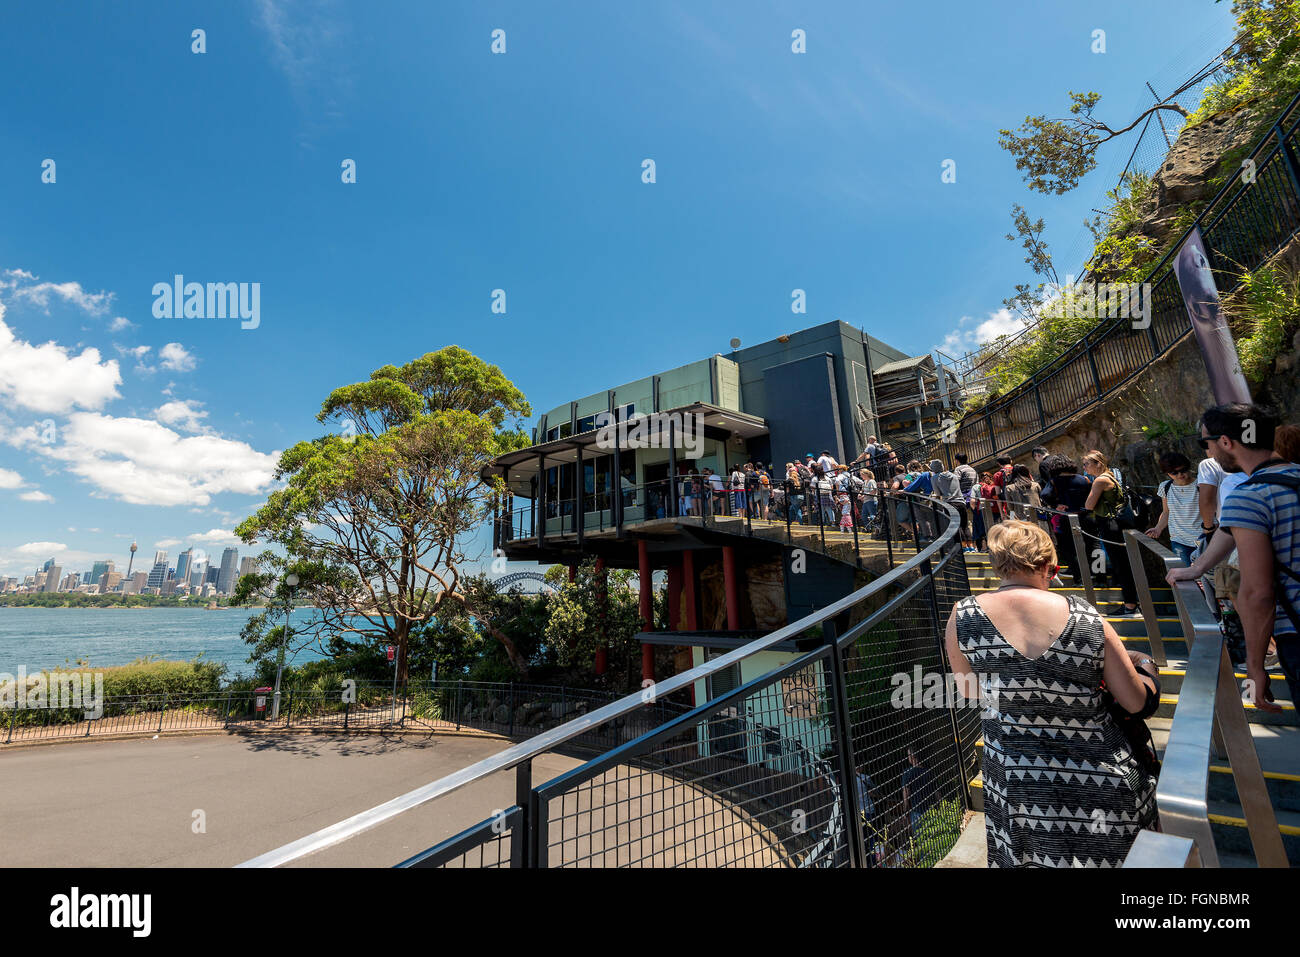 Sydney, Australia - November 09, 2015: People lined up in the queue to the Taronga Zoo entrance. Taronga Zoo is - Stock Image